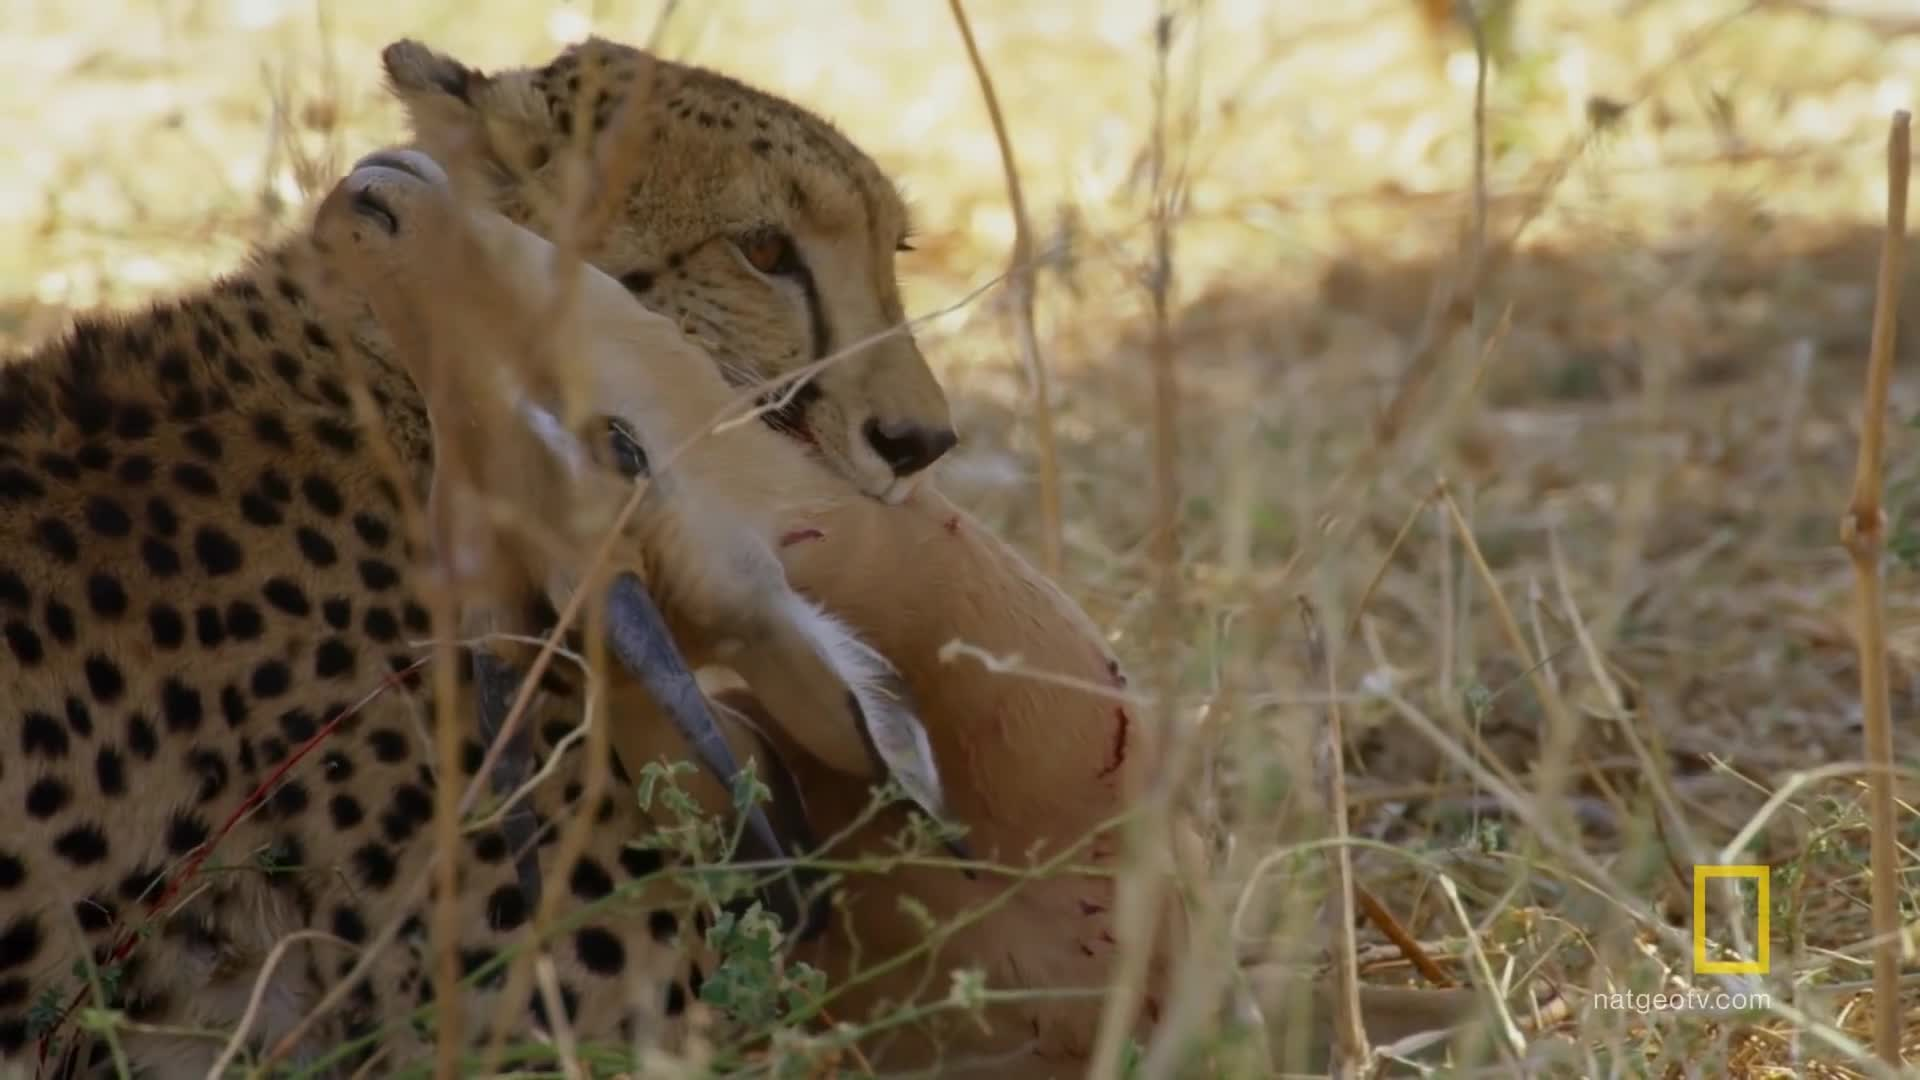 animals, discover, explore, nat geo, natgeo, national geographic, nature, science, survival, wildlife, Hyena Steals a Cheetah's Kill | Savage Kingdom GIFs